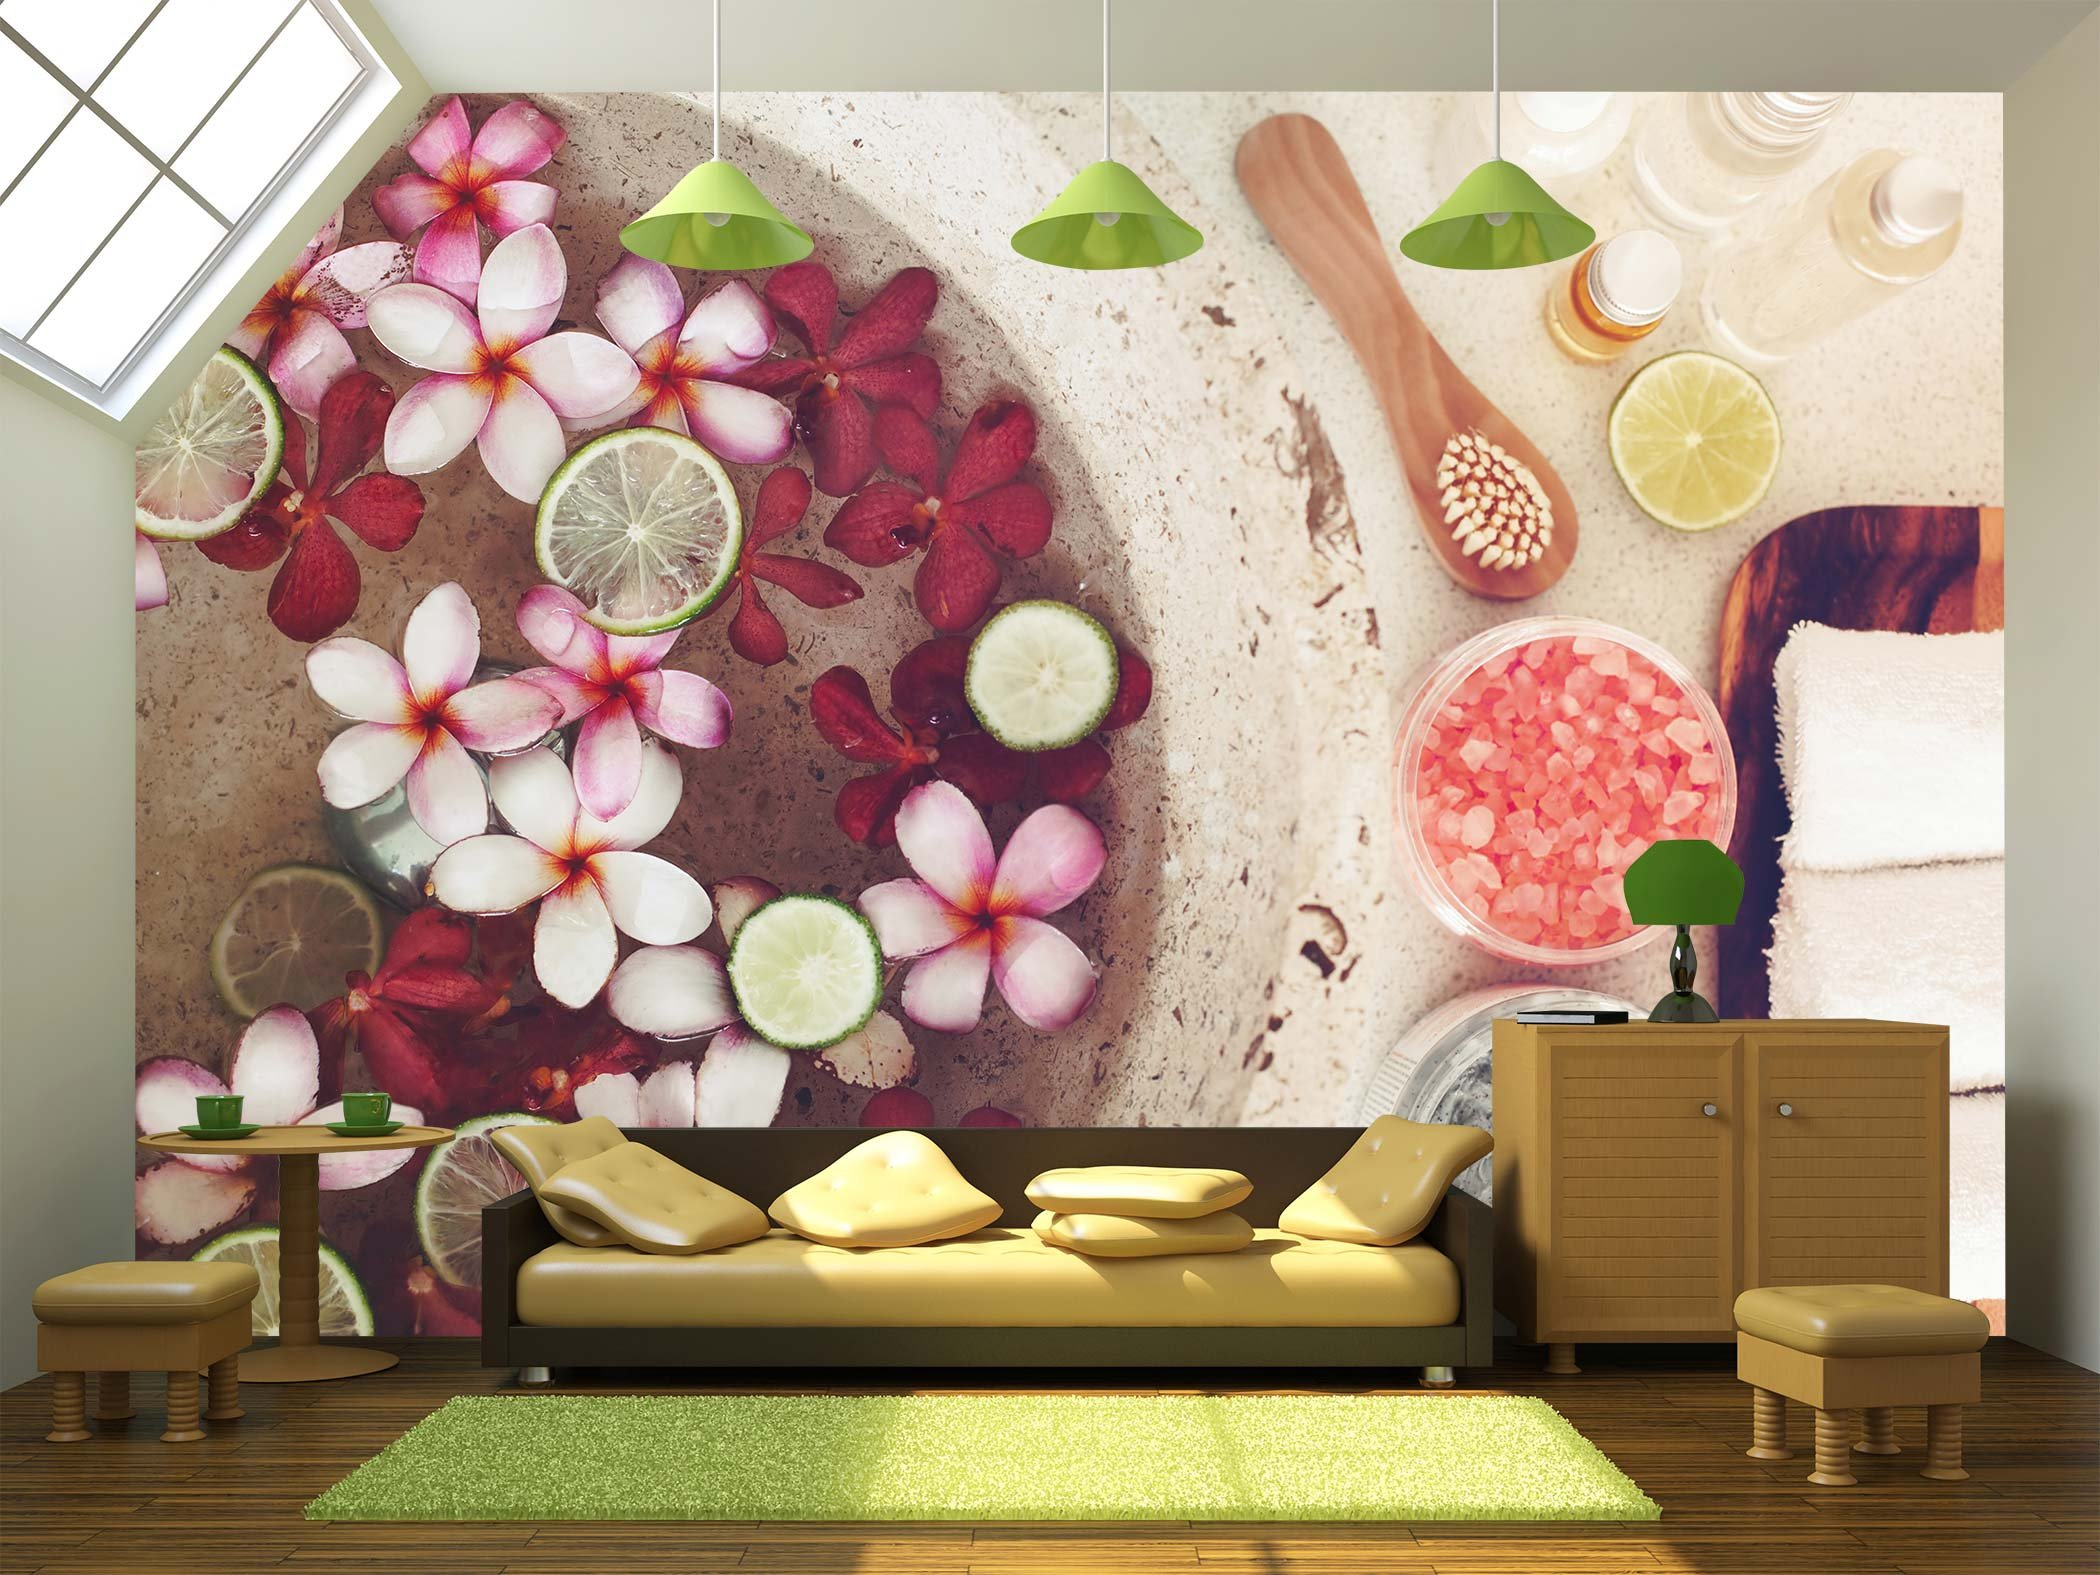 wall26 - Foot bath in bowl with lime and tropical flowers, spa pedicure treatment, top view - Removable Wall Mural | Self-adhesive Large Wallpaper - 100x144 inches